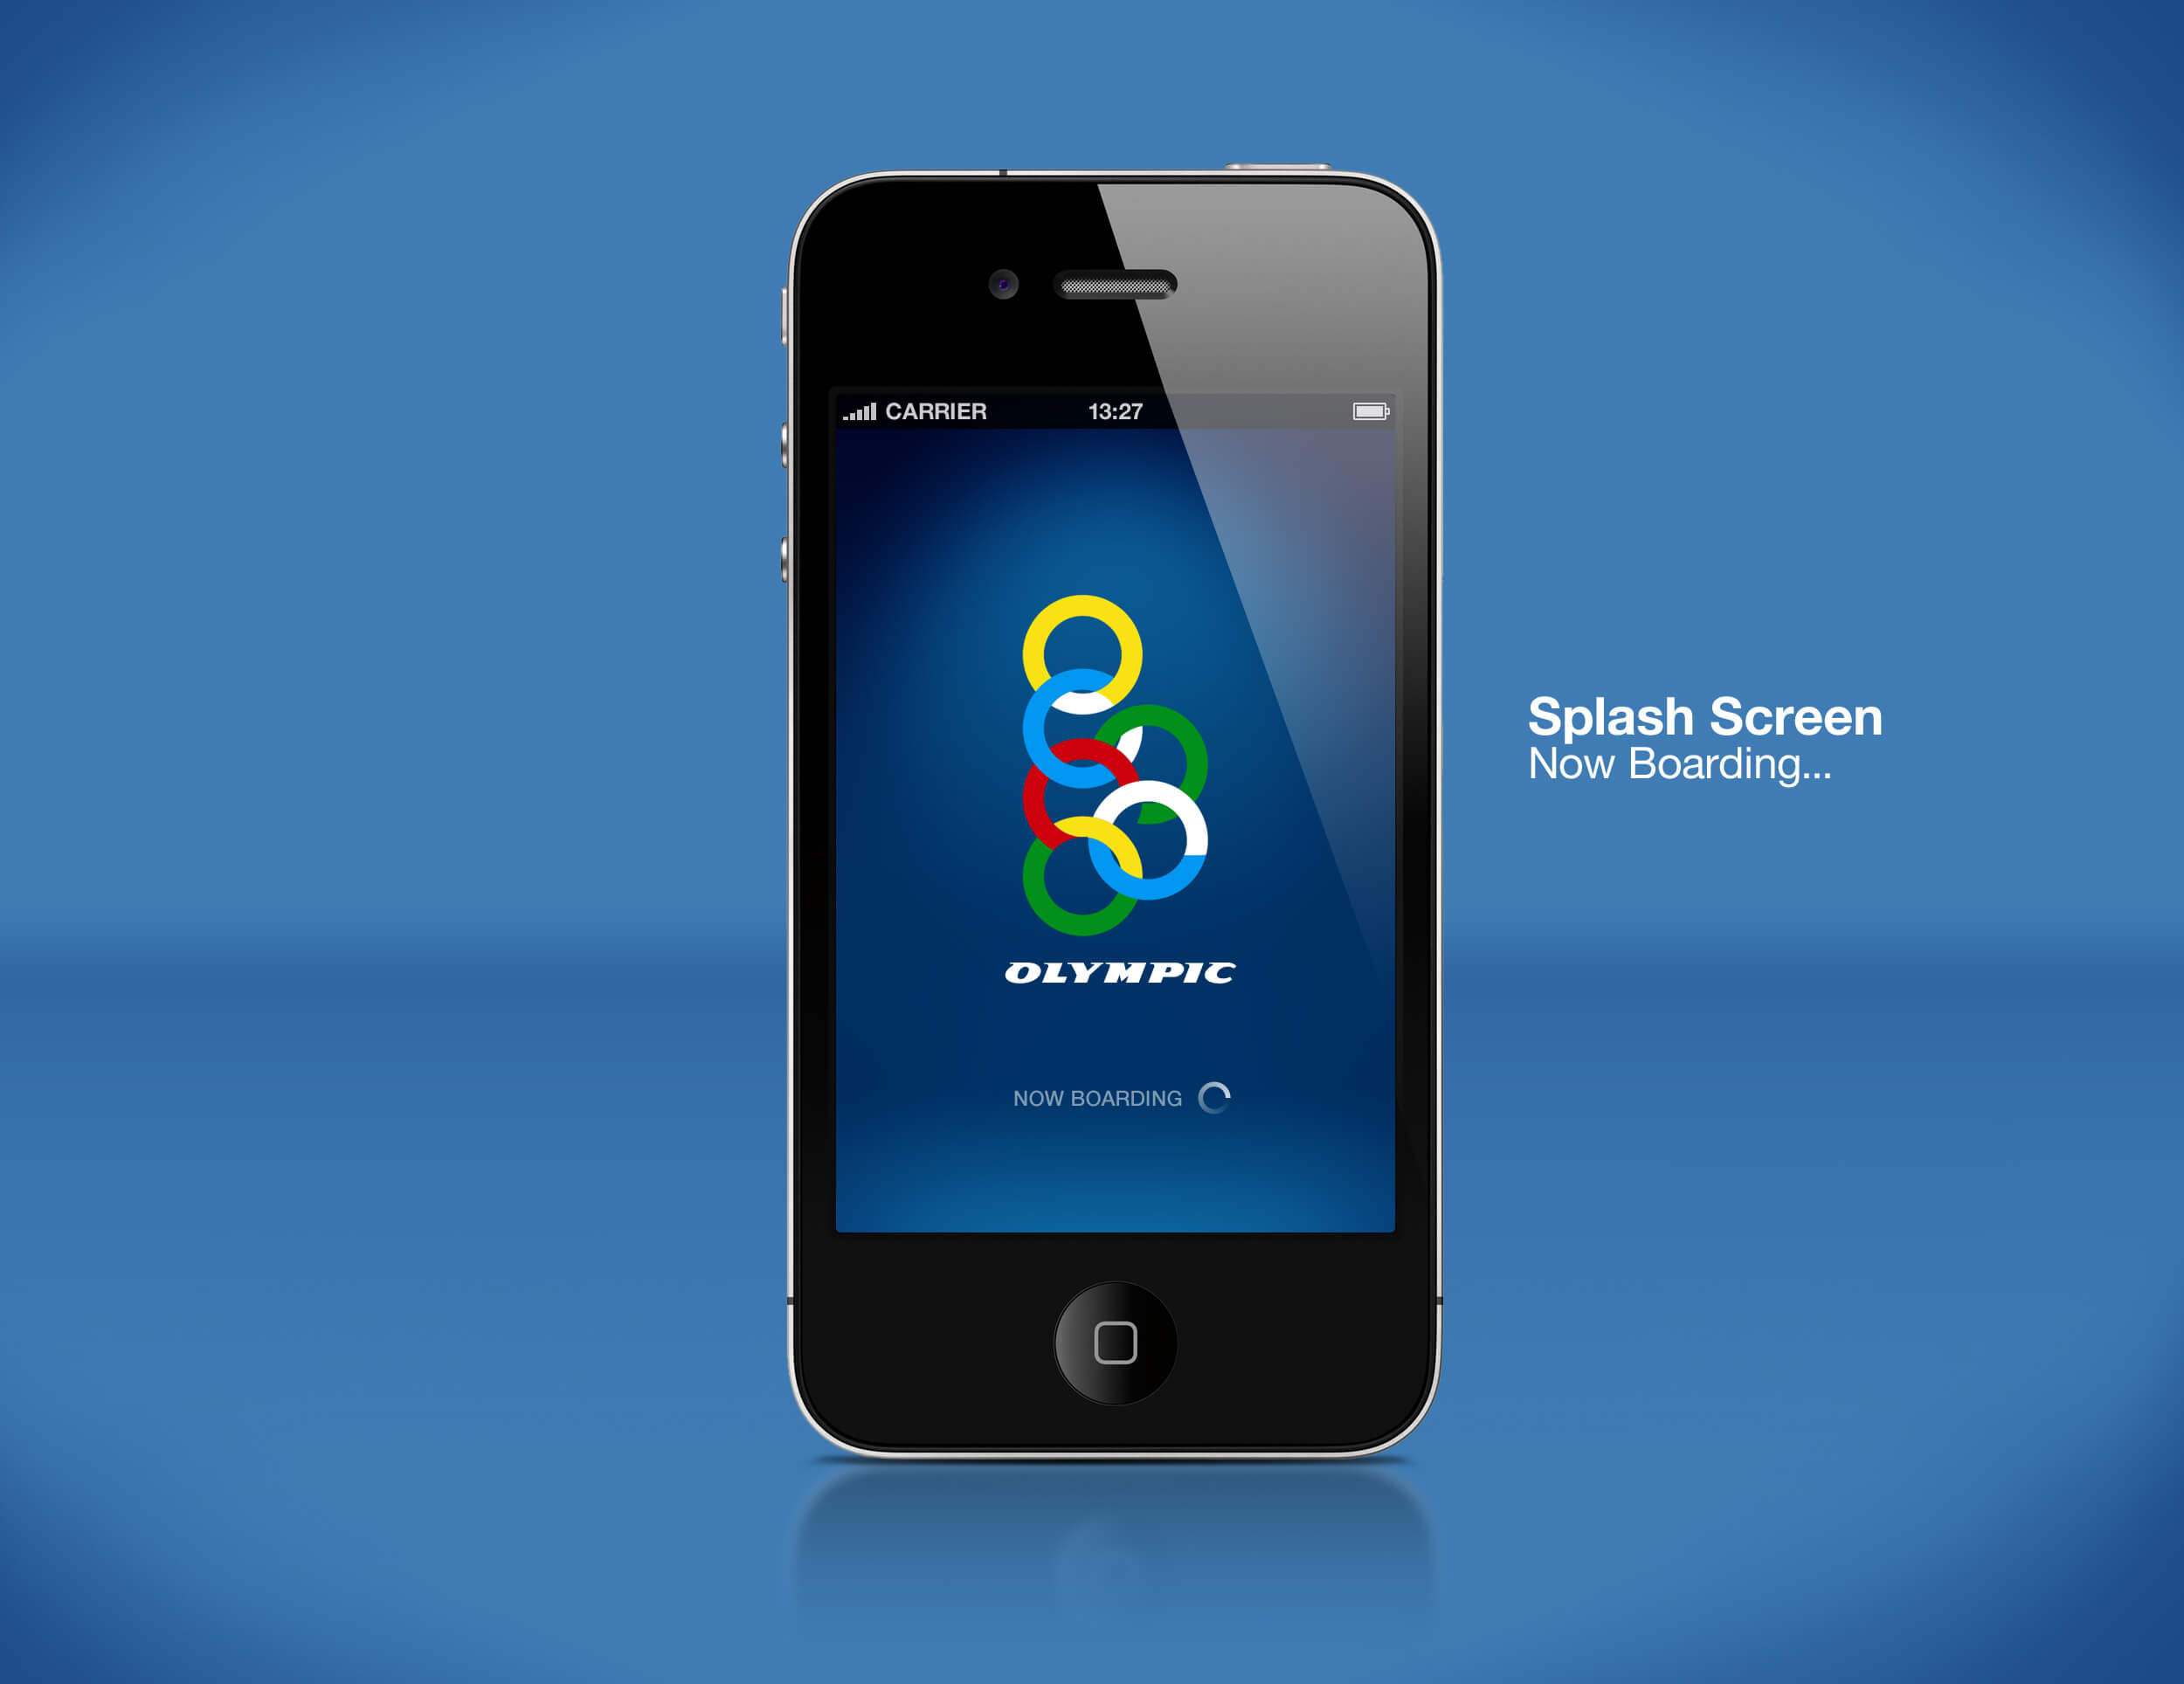 Airline Mobile App Splash Screen